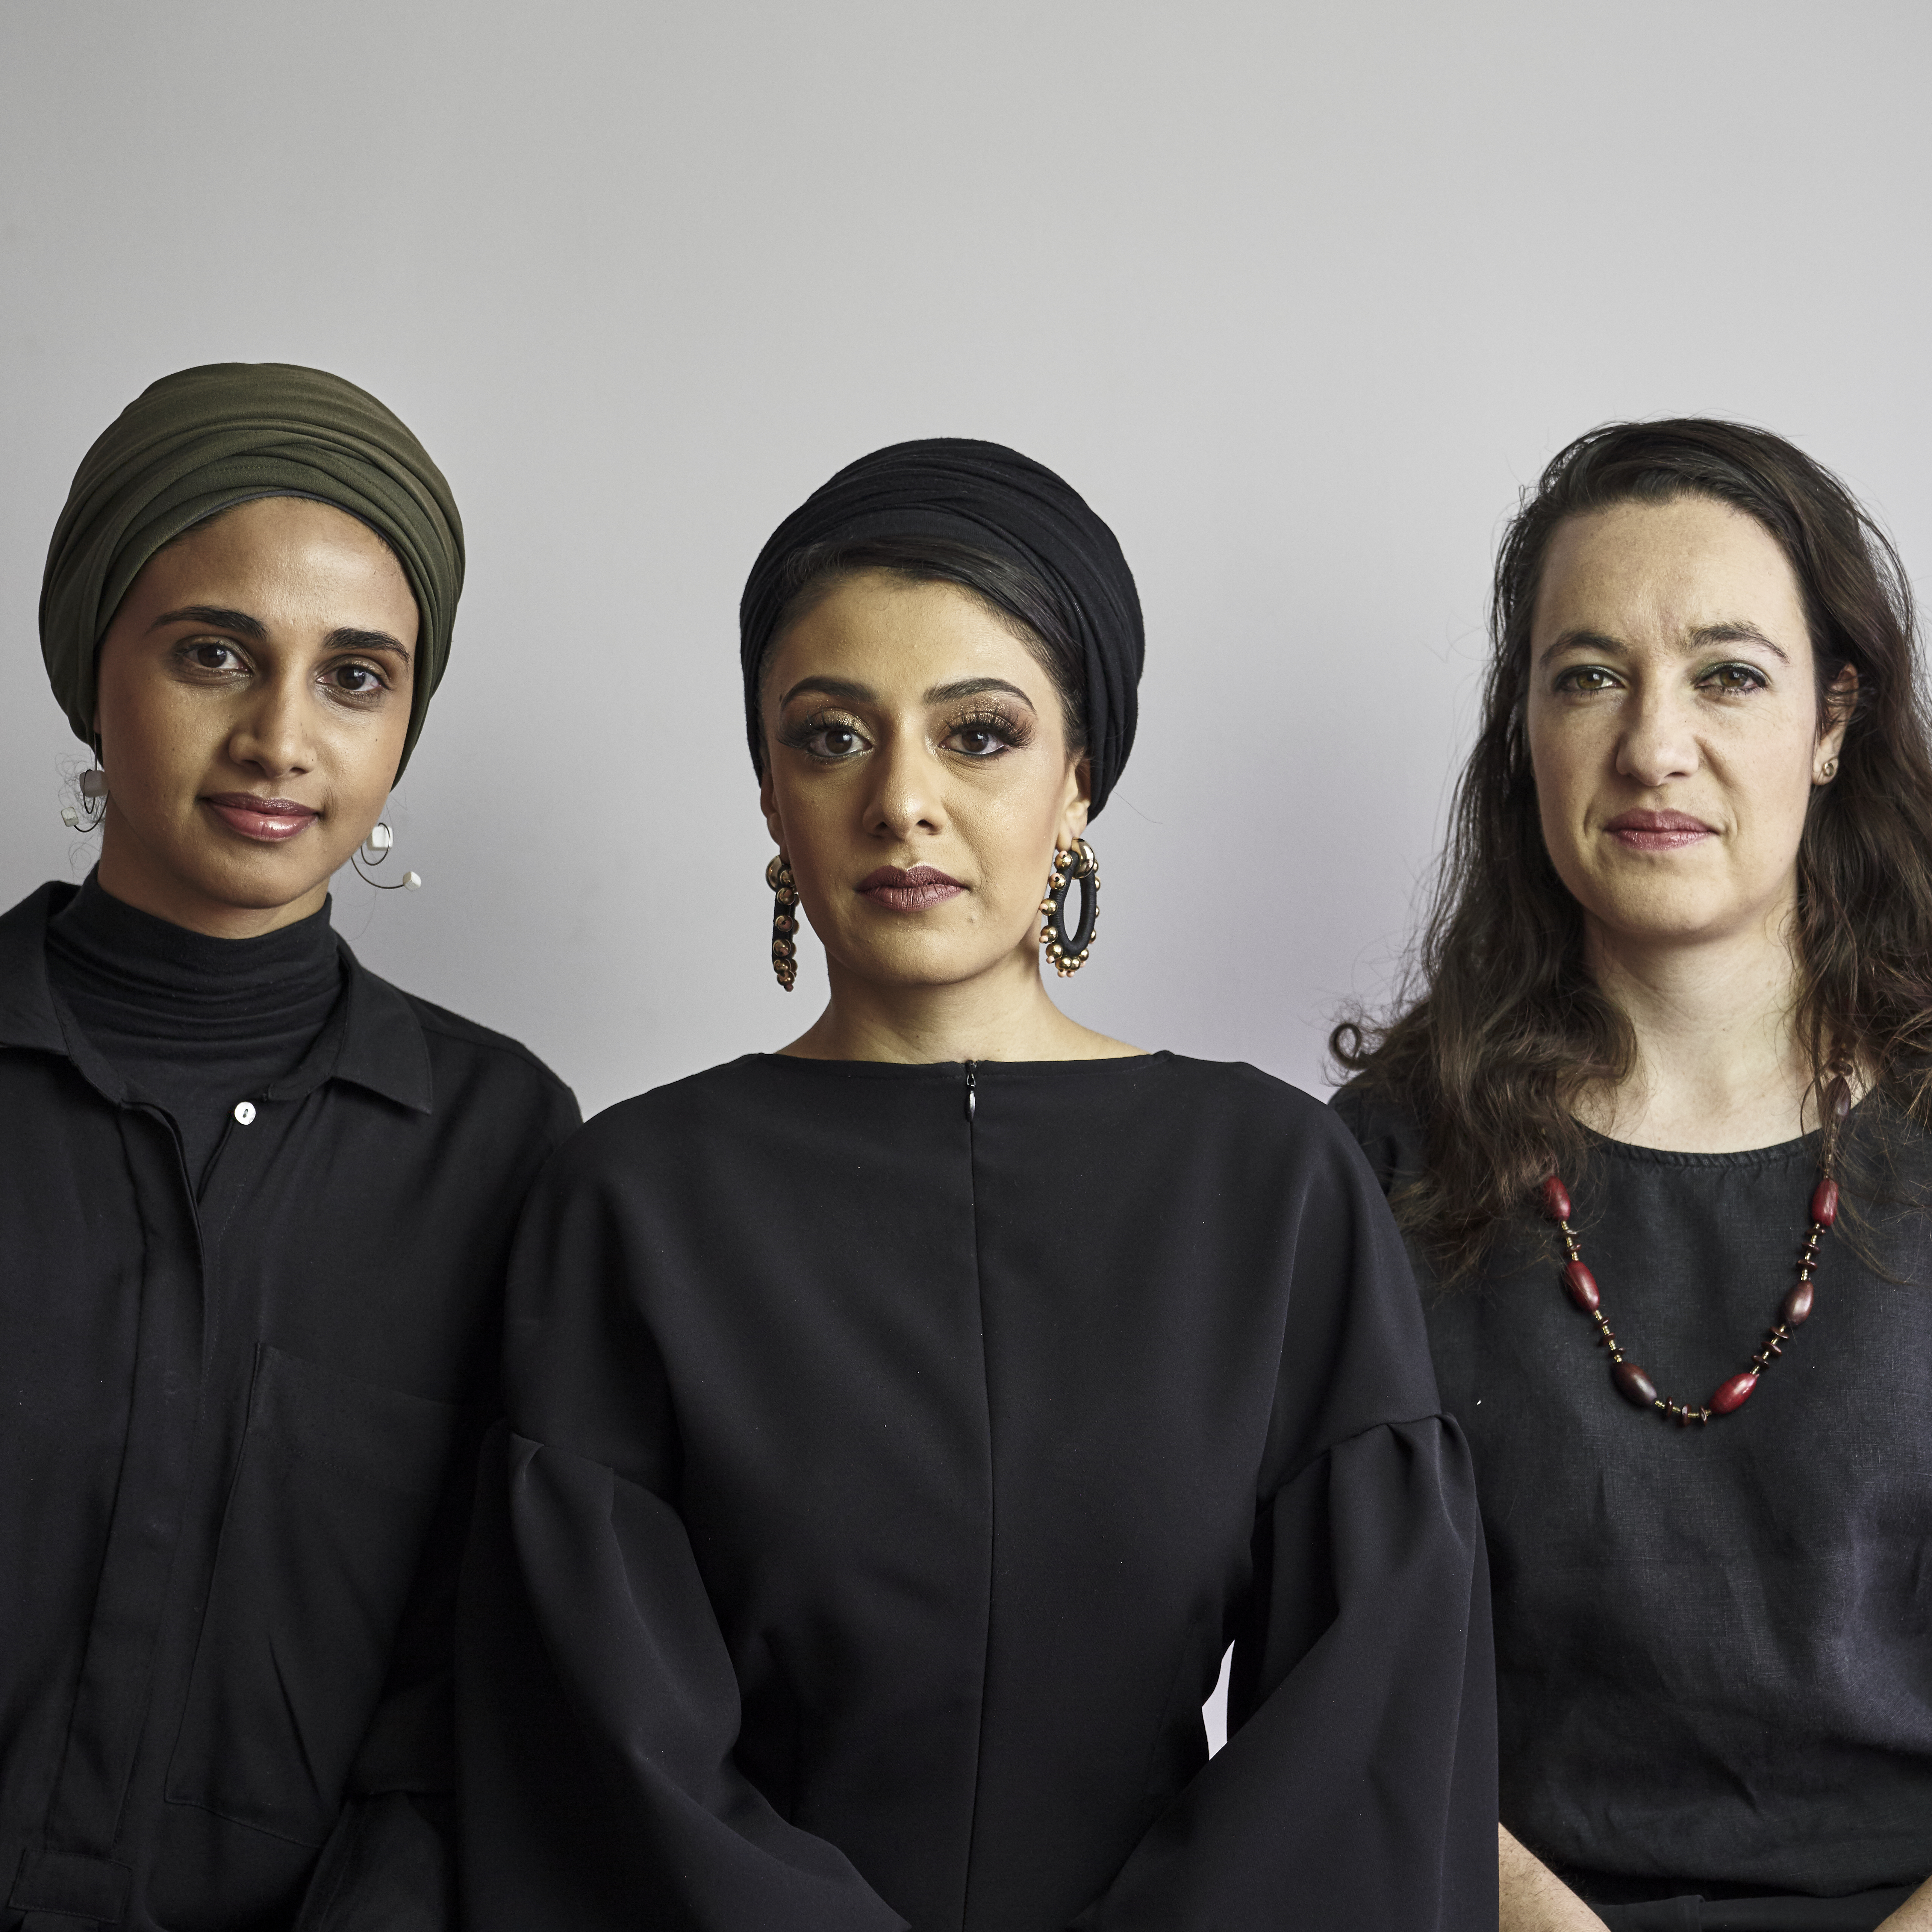 Amina Kaskar, Sumayya Vally and Sarah de Villiers of Counterspace in Johannesburg, 2020. Photo: Justice Mukheli. Courtesy of Counterspace.